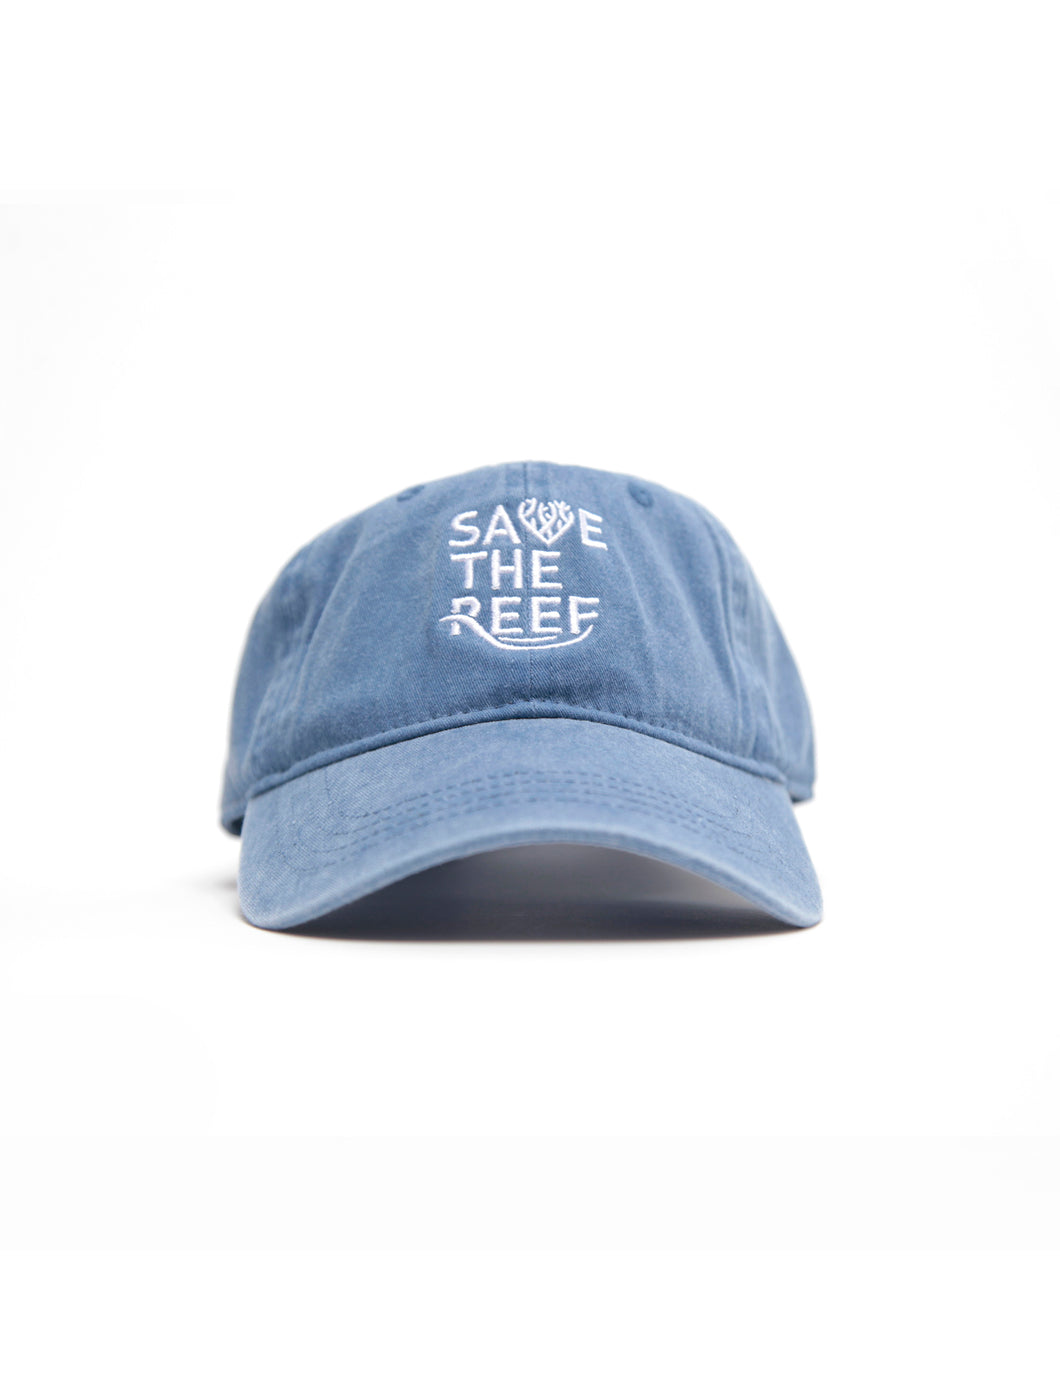 Save the Reef Dad Cap